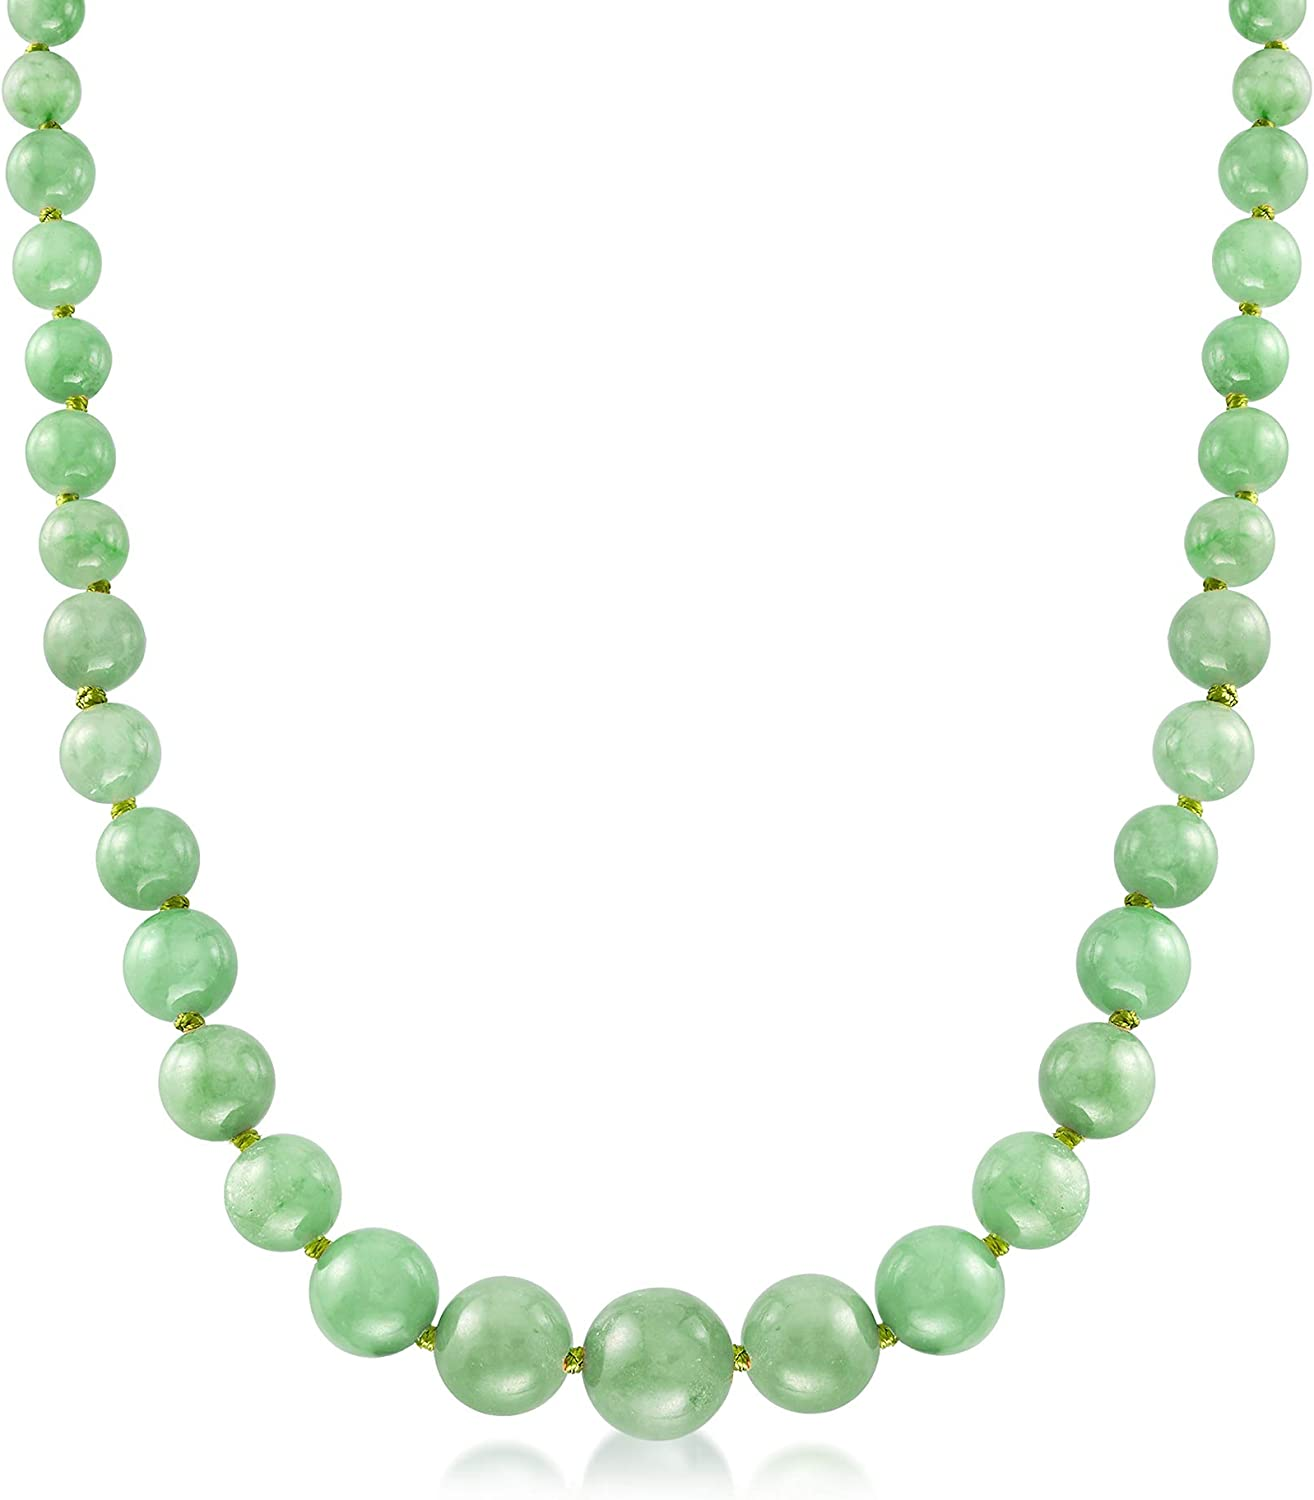 Ross-Simons 6-13mm Graduated Green Jade Bead Necklace With 14kt Yellow Gold